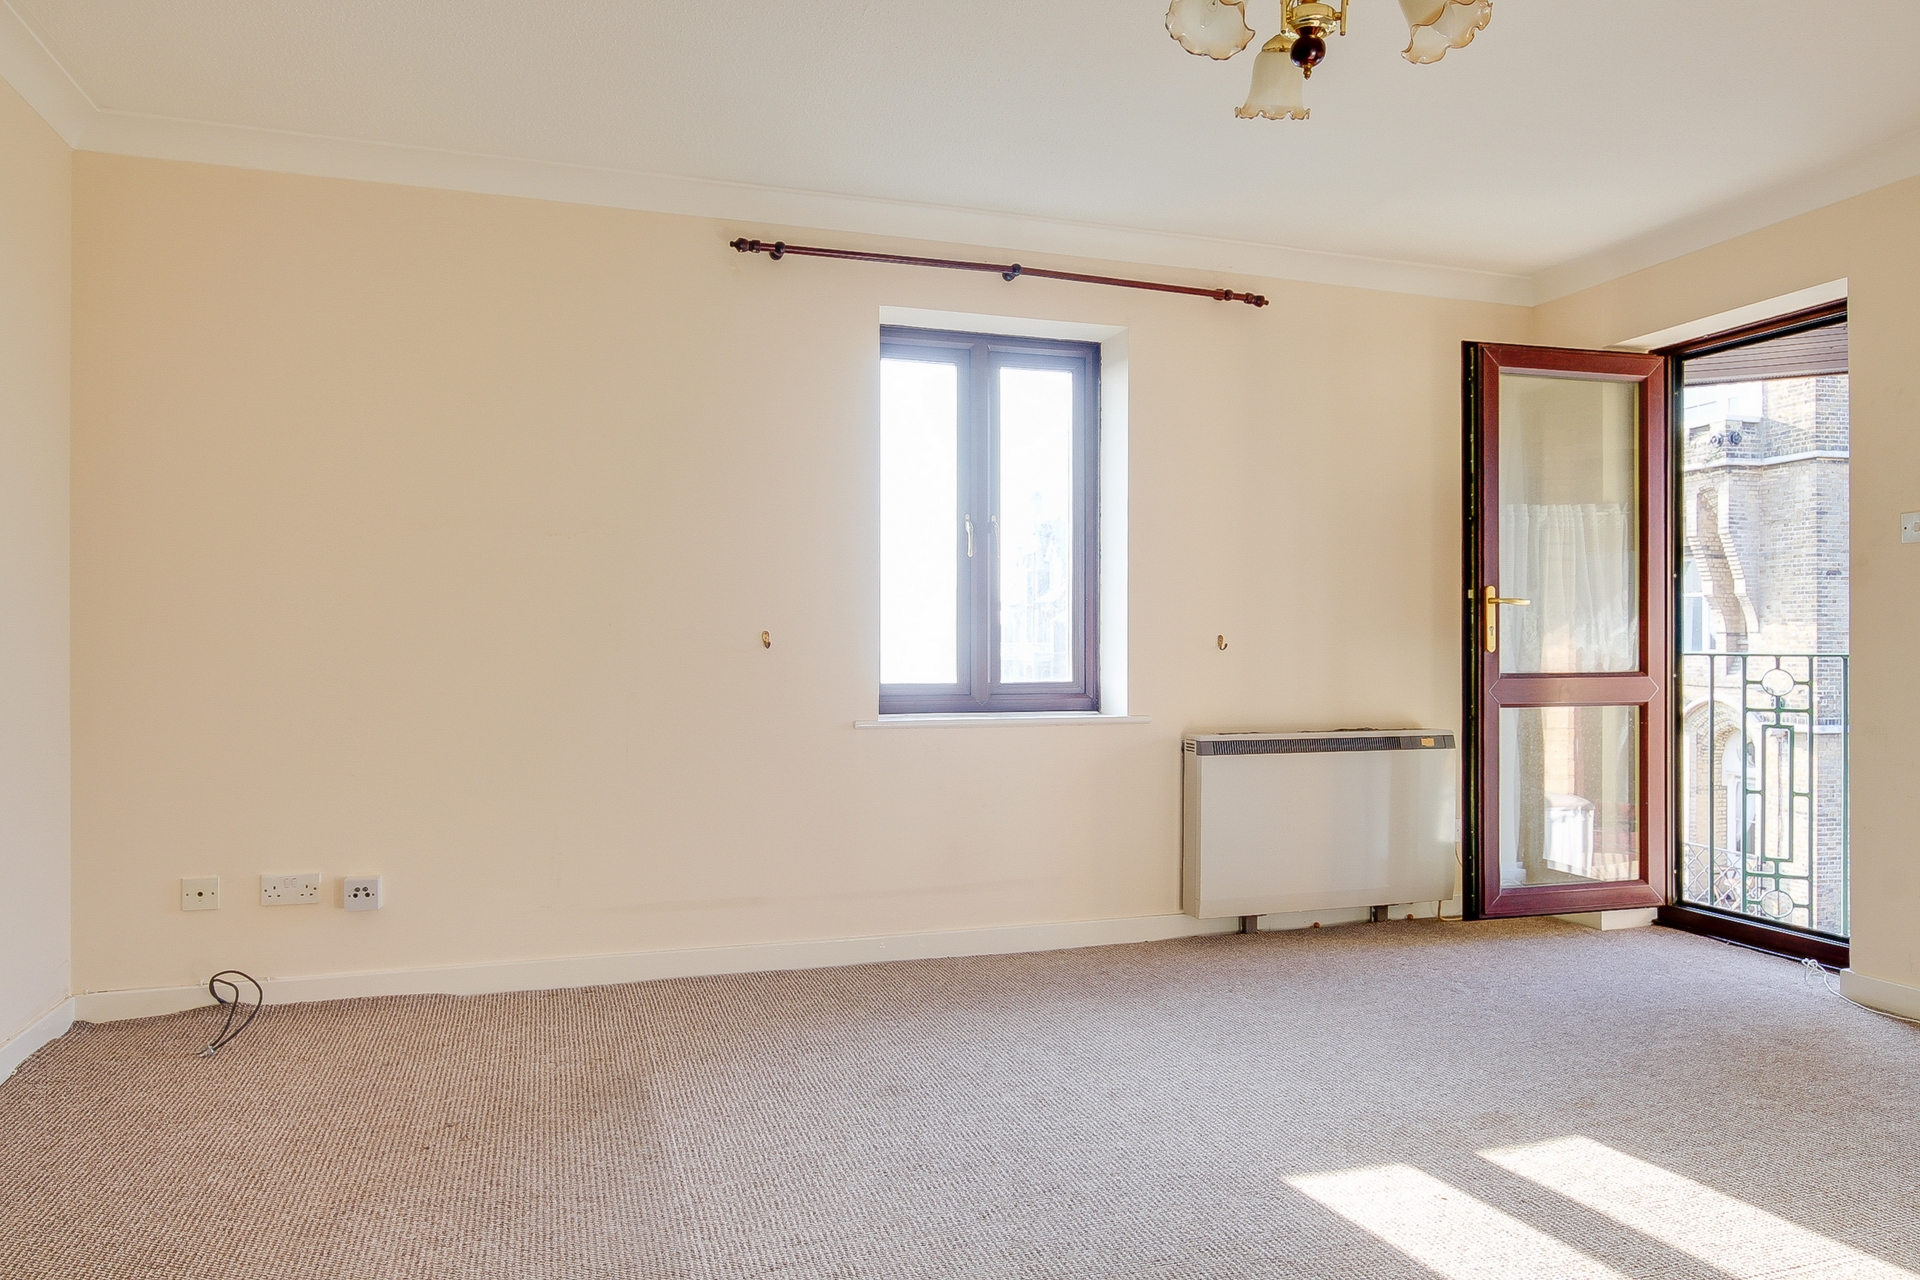 2 bed flat to rent in Victoria Road, Ramsgate, CT11 2